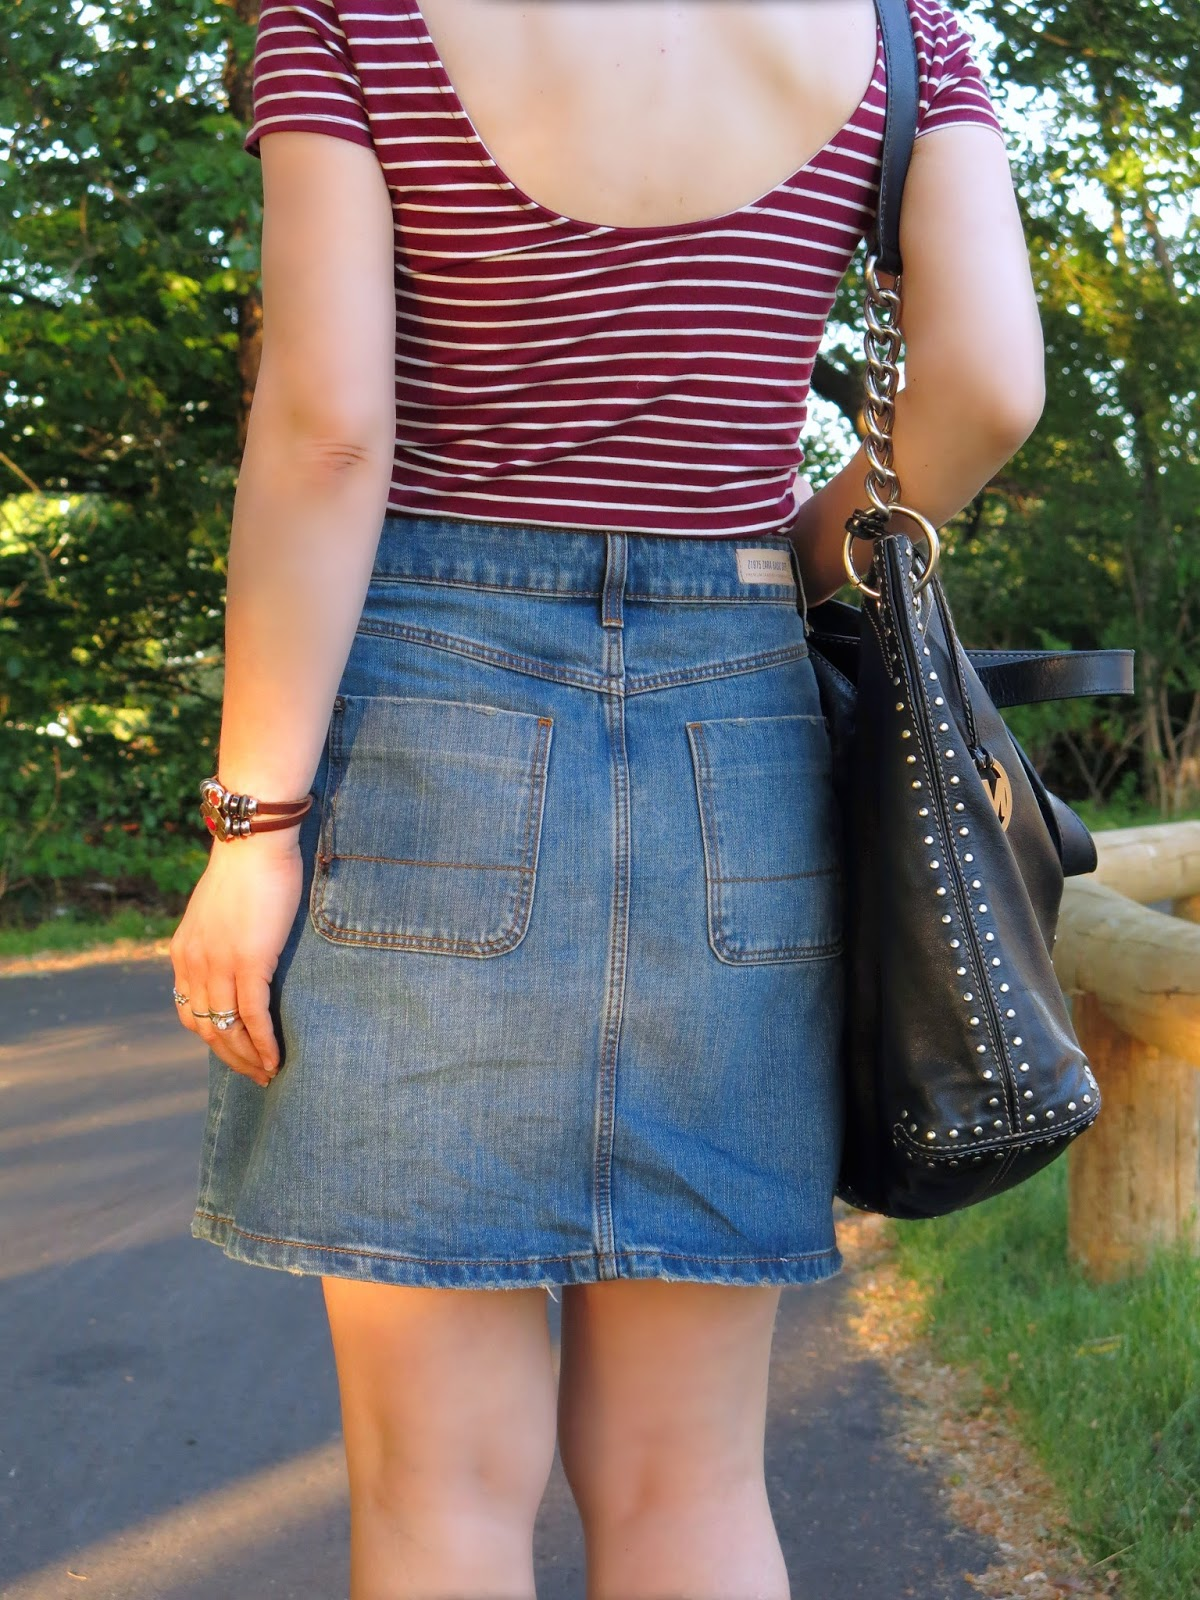 styling a button-front A-line mini skirt with a striped t-shirt